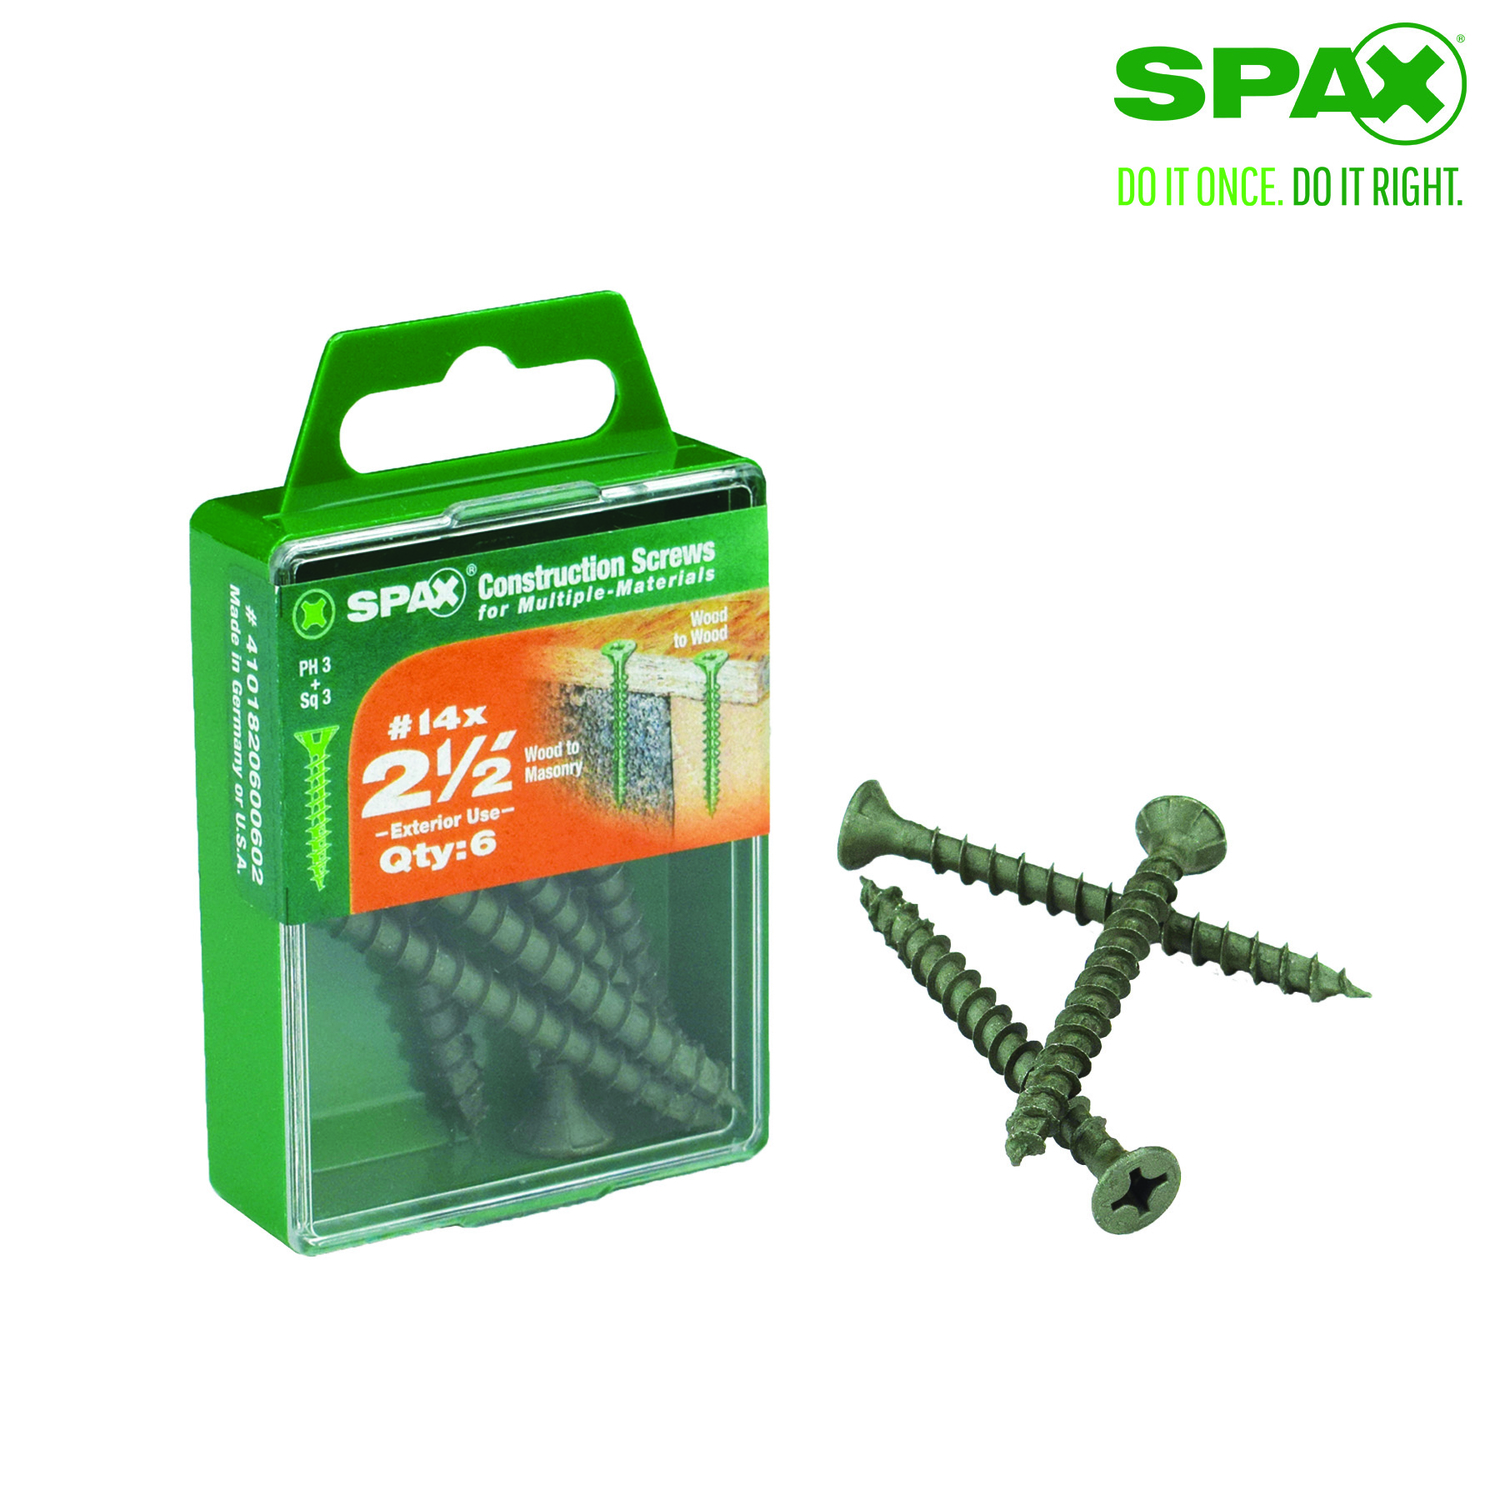 SPAX  No. 14   x 2-1/2 in. L Phillips/Square  Flat  High Corrosion Resistant  Steel  Multi-Purpose S